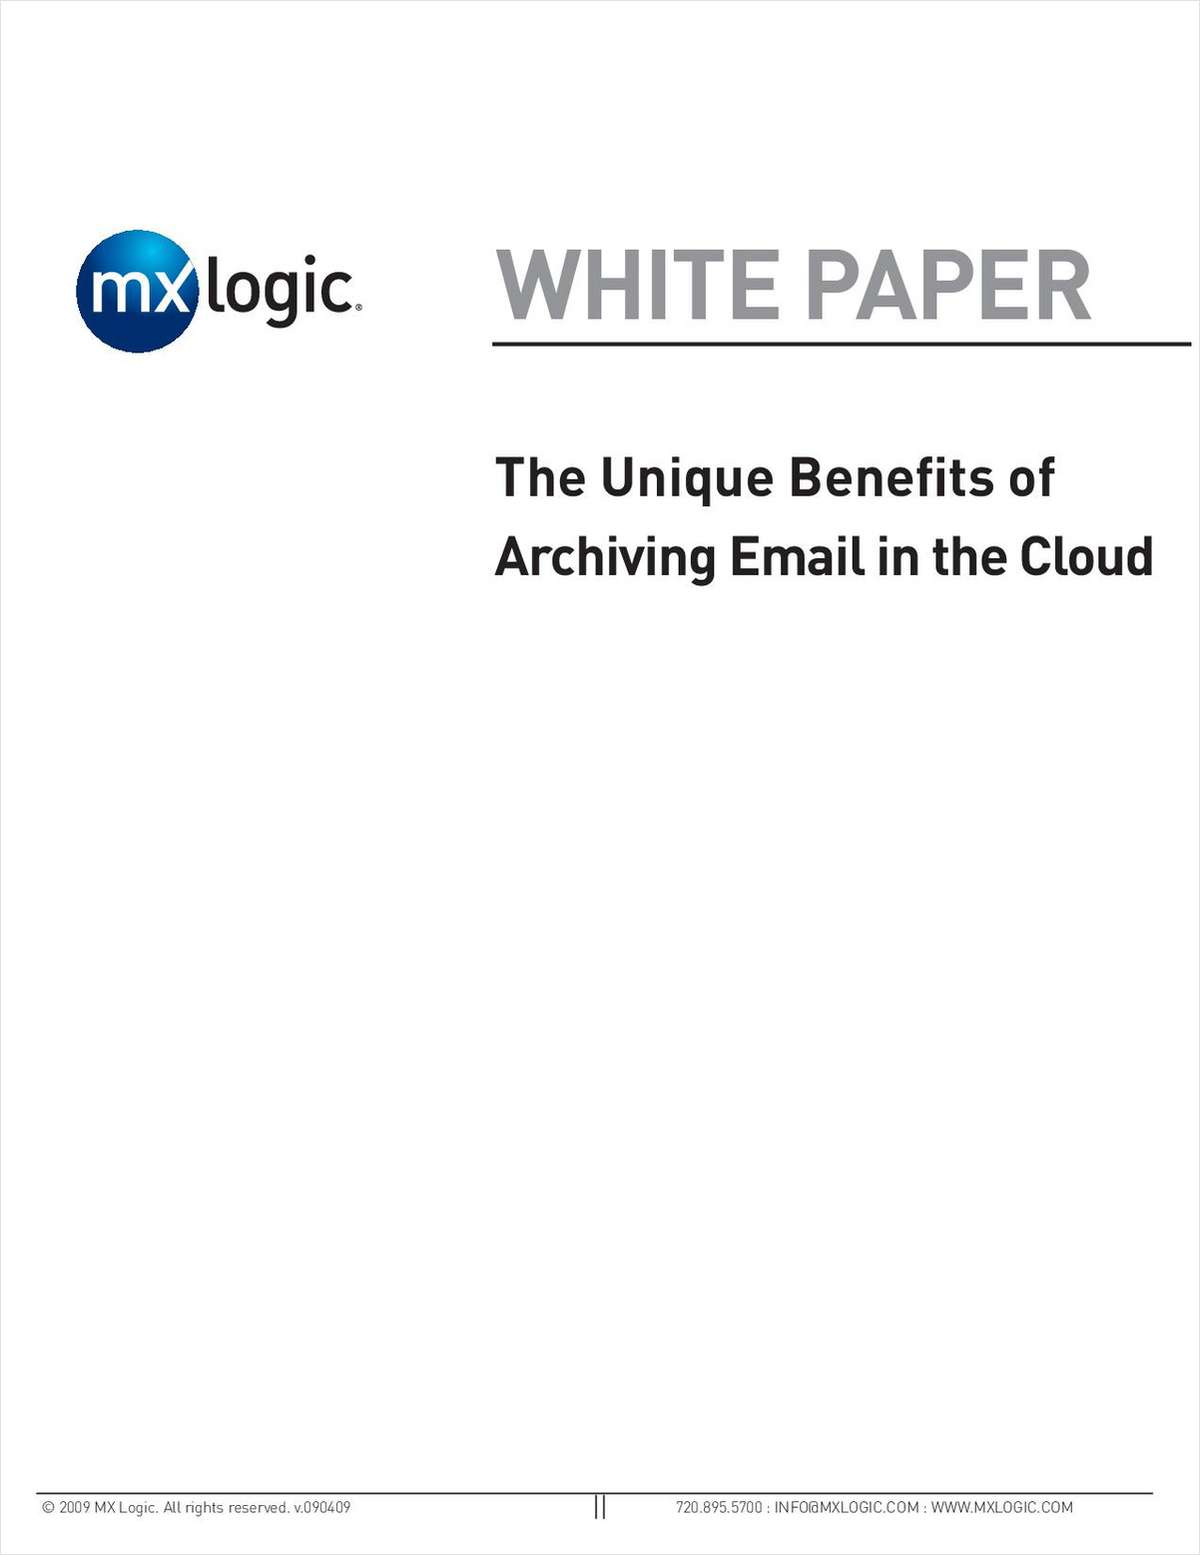 The Unique Benefits of Archiving Email in the Cloud